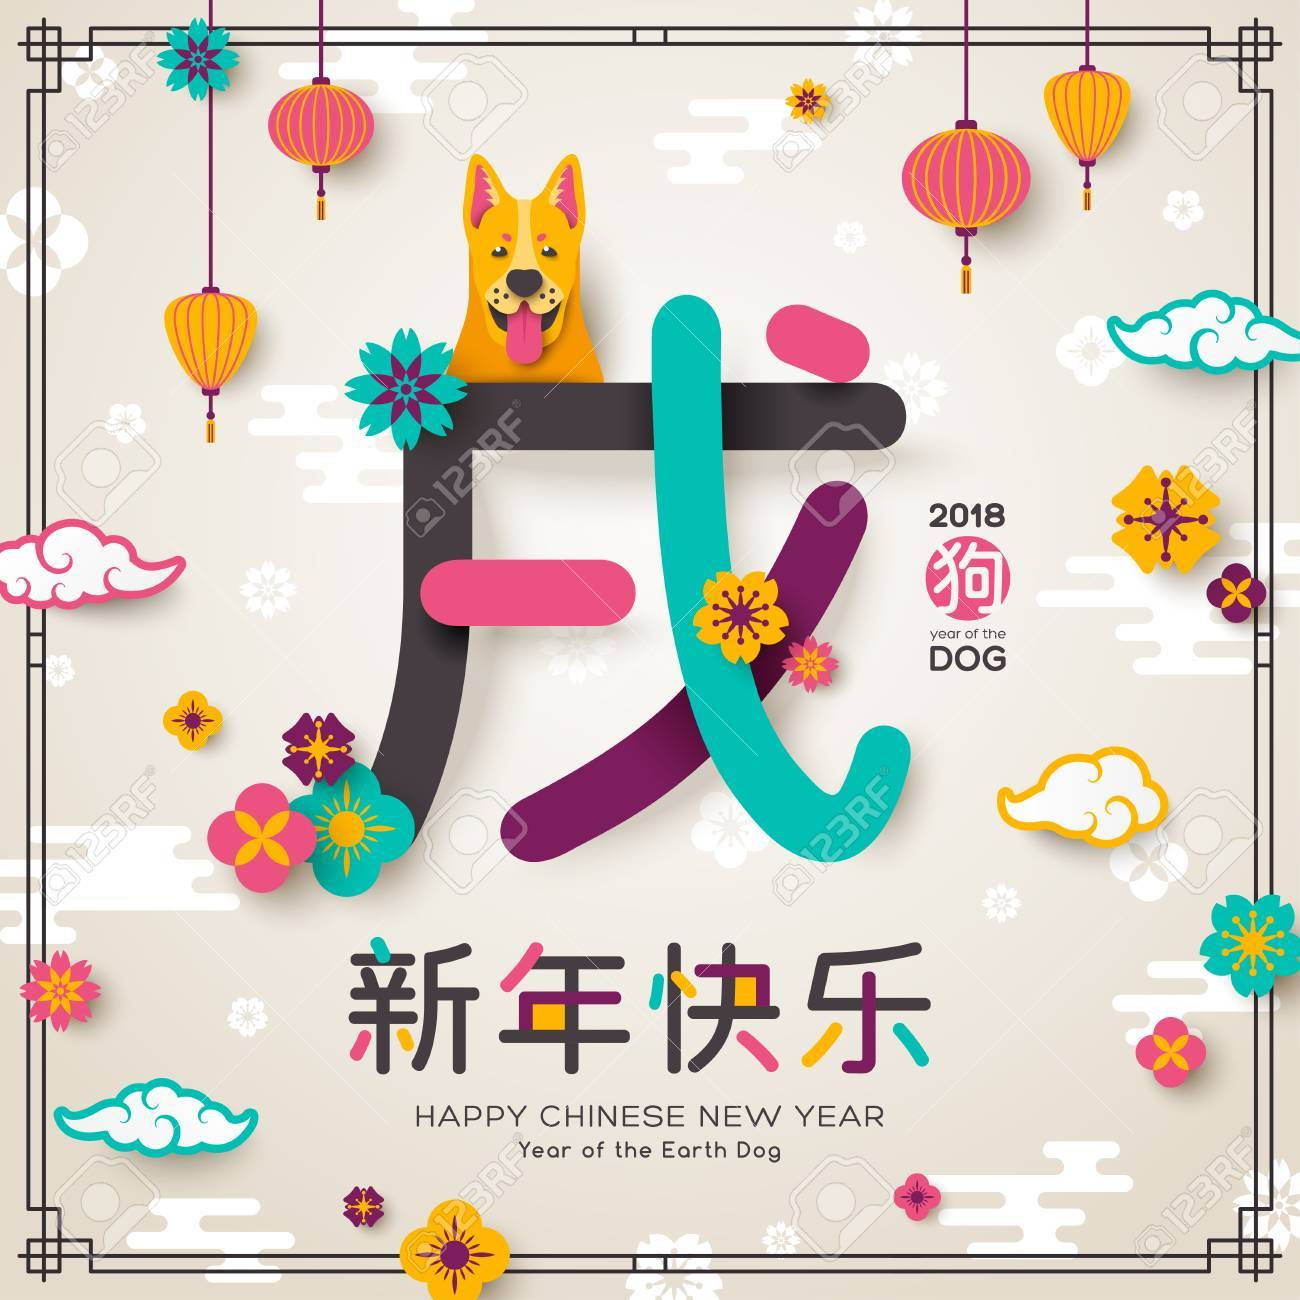 2018 chinese new year greeting card with hieroglyph earth dog clouds and flowers on